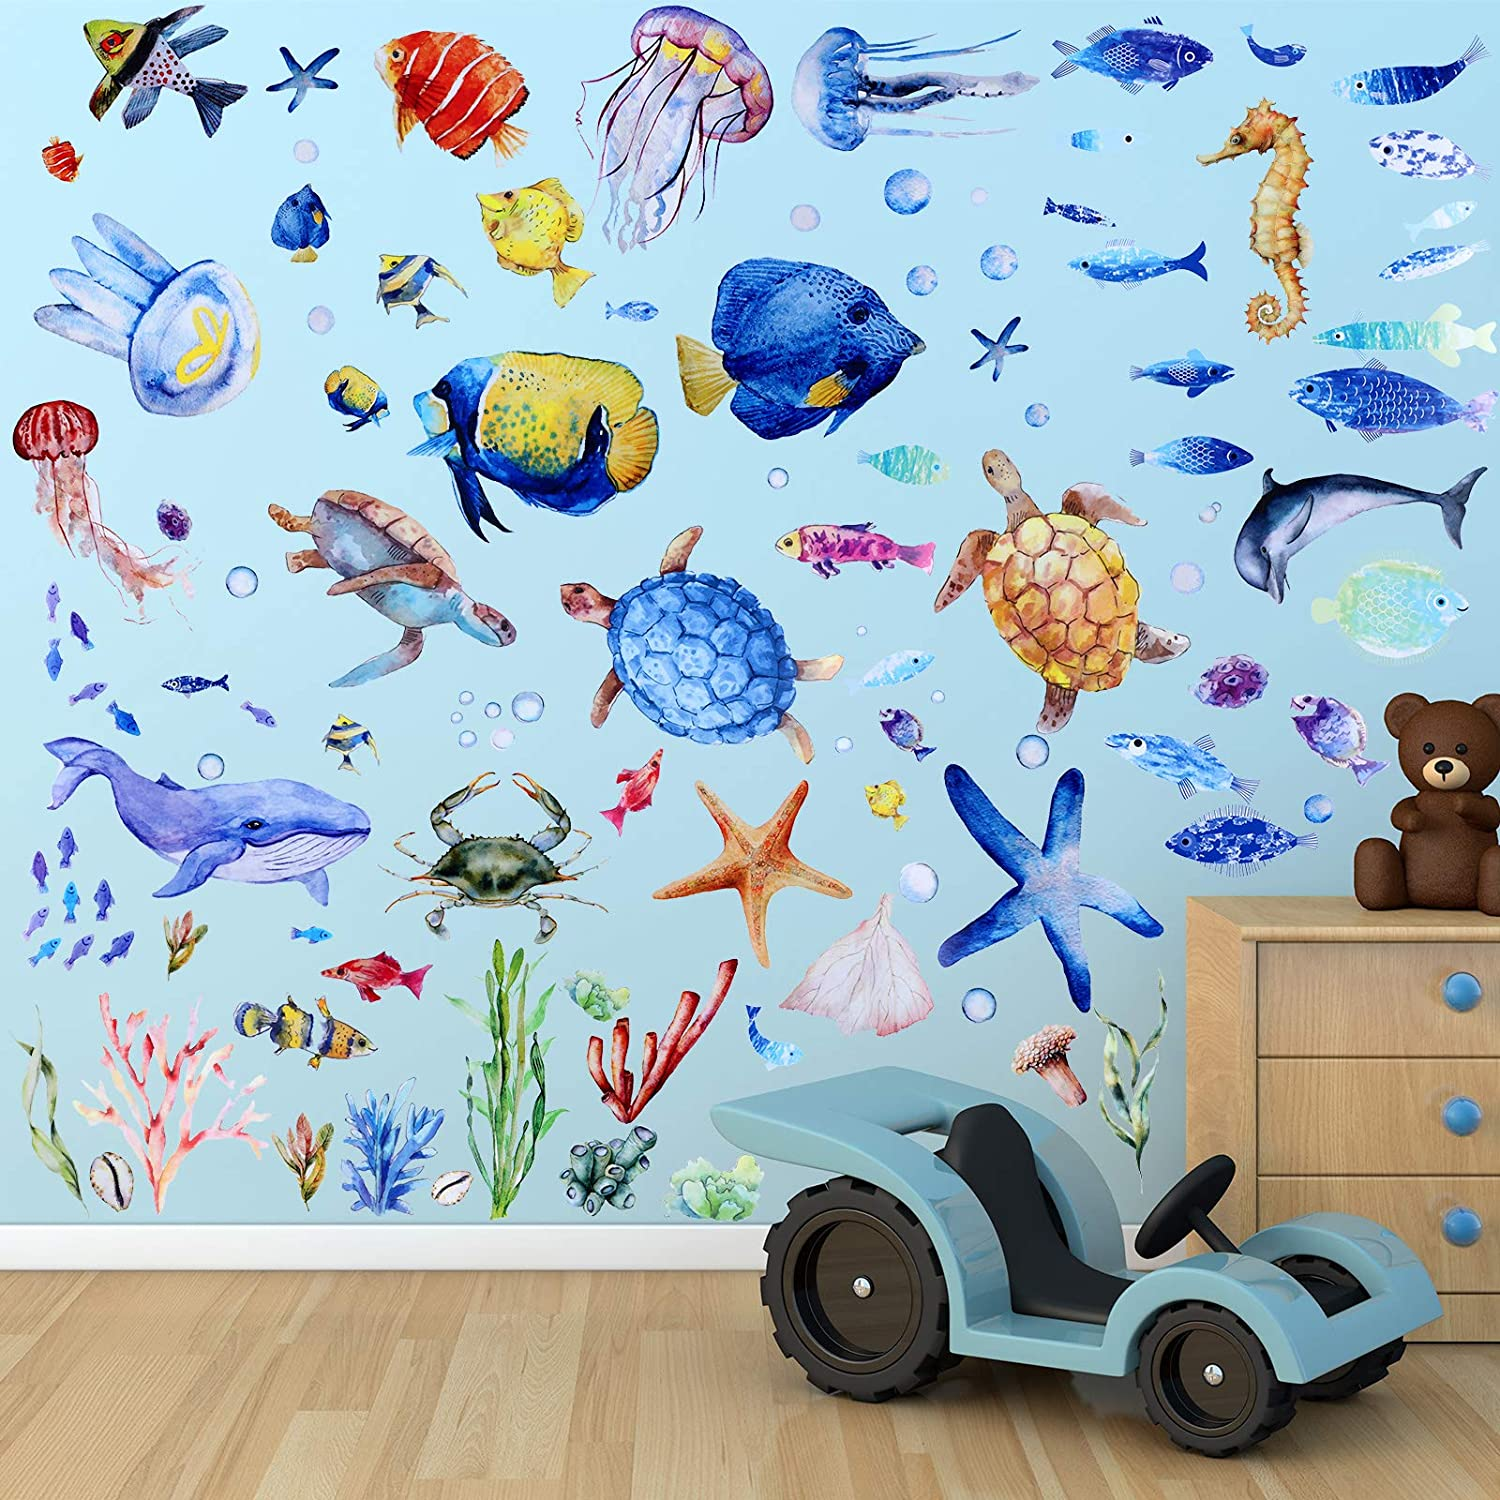 116 Pieces Under The Sea Wall Decals Jellyfish Wall Stickers Fish Ocean Wall Stickers Removable Peel and Sticks for Kids Baby Bedroom Living Room Bathroom Office (Lovely Colors)